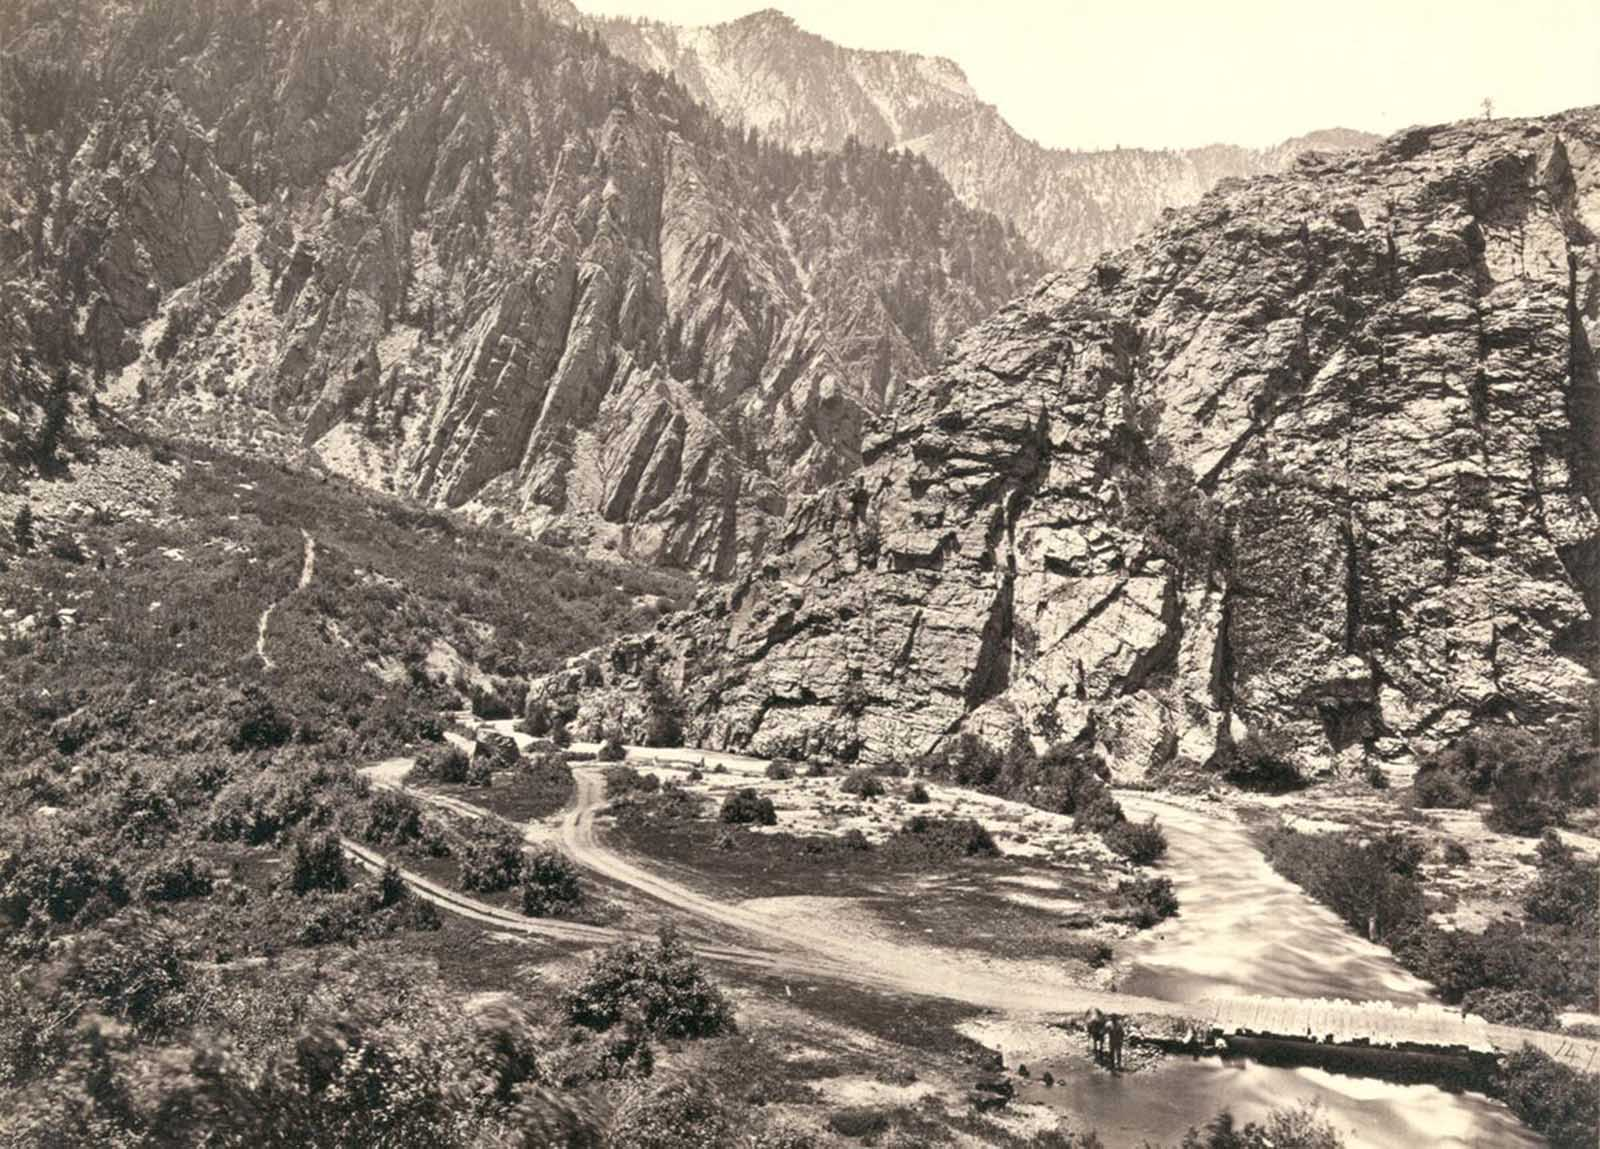 Big Cottonwood Canyon, Utah, in 1869. Note man and horse near the bridge at bottom right.